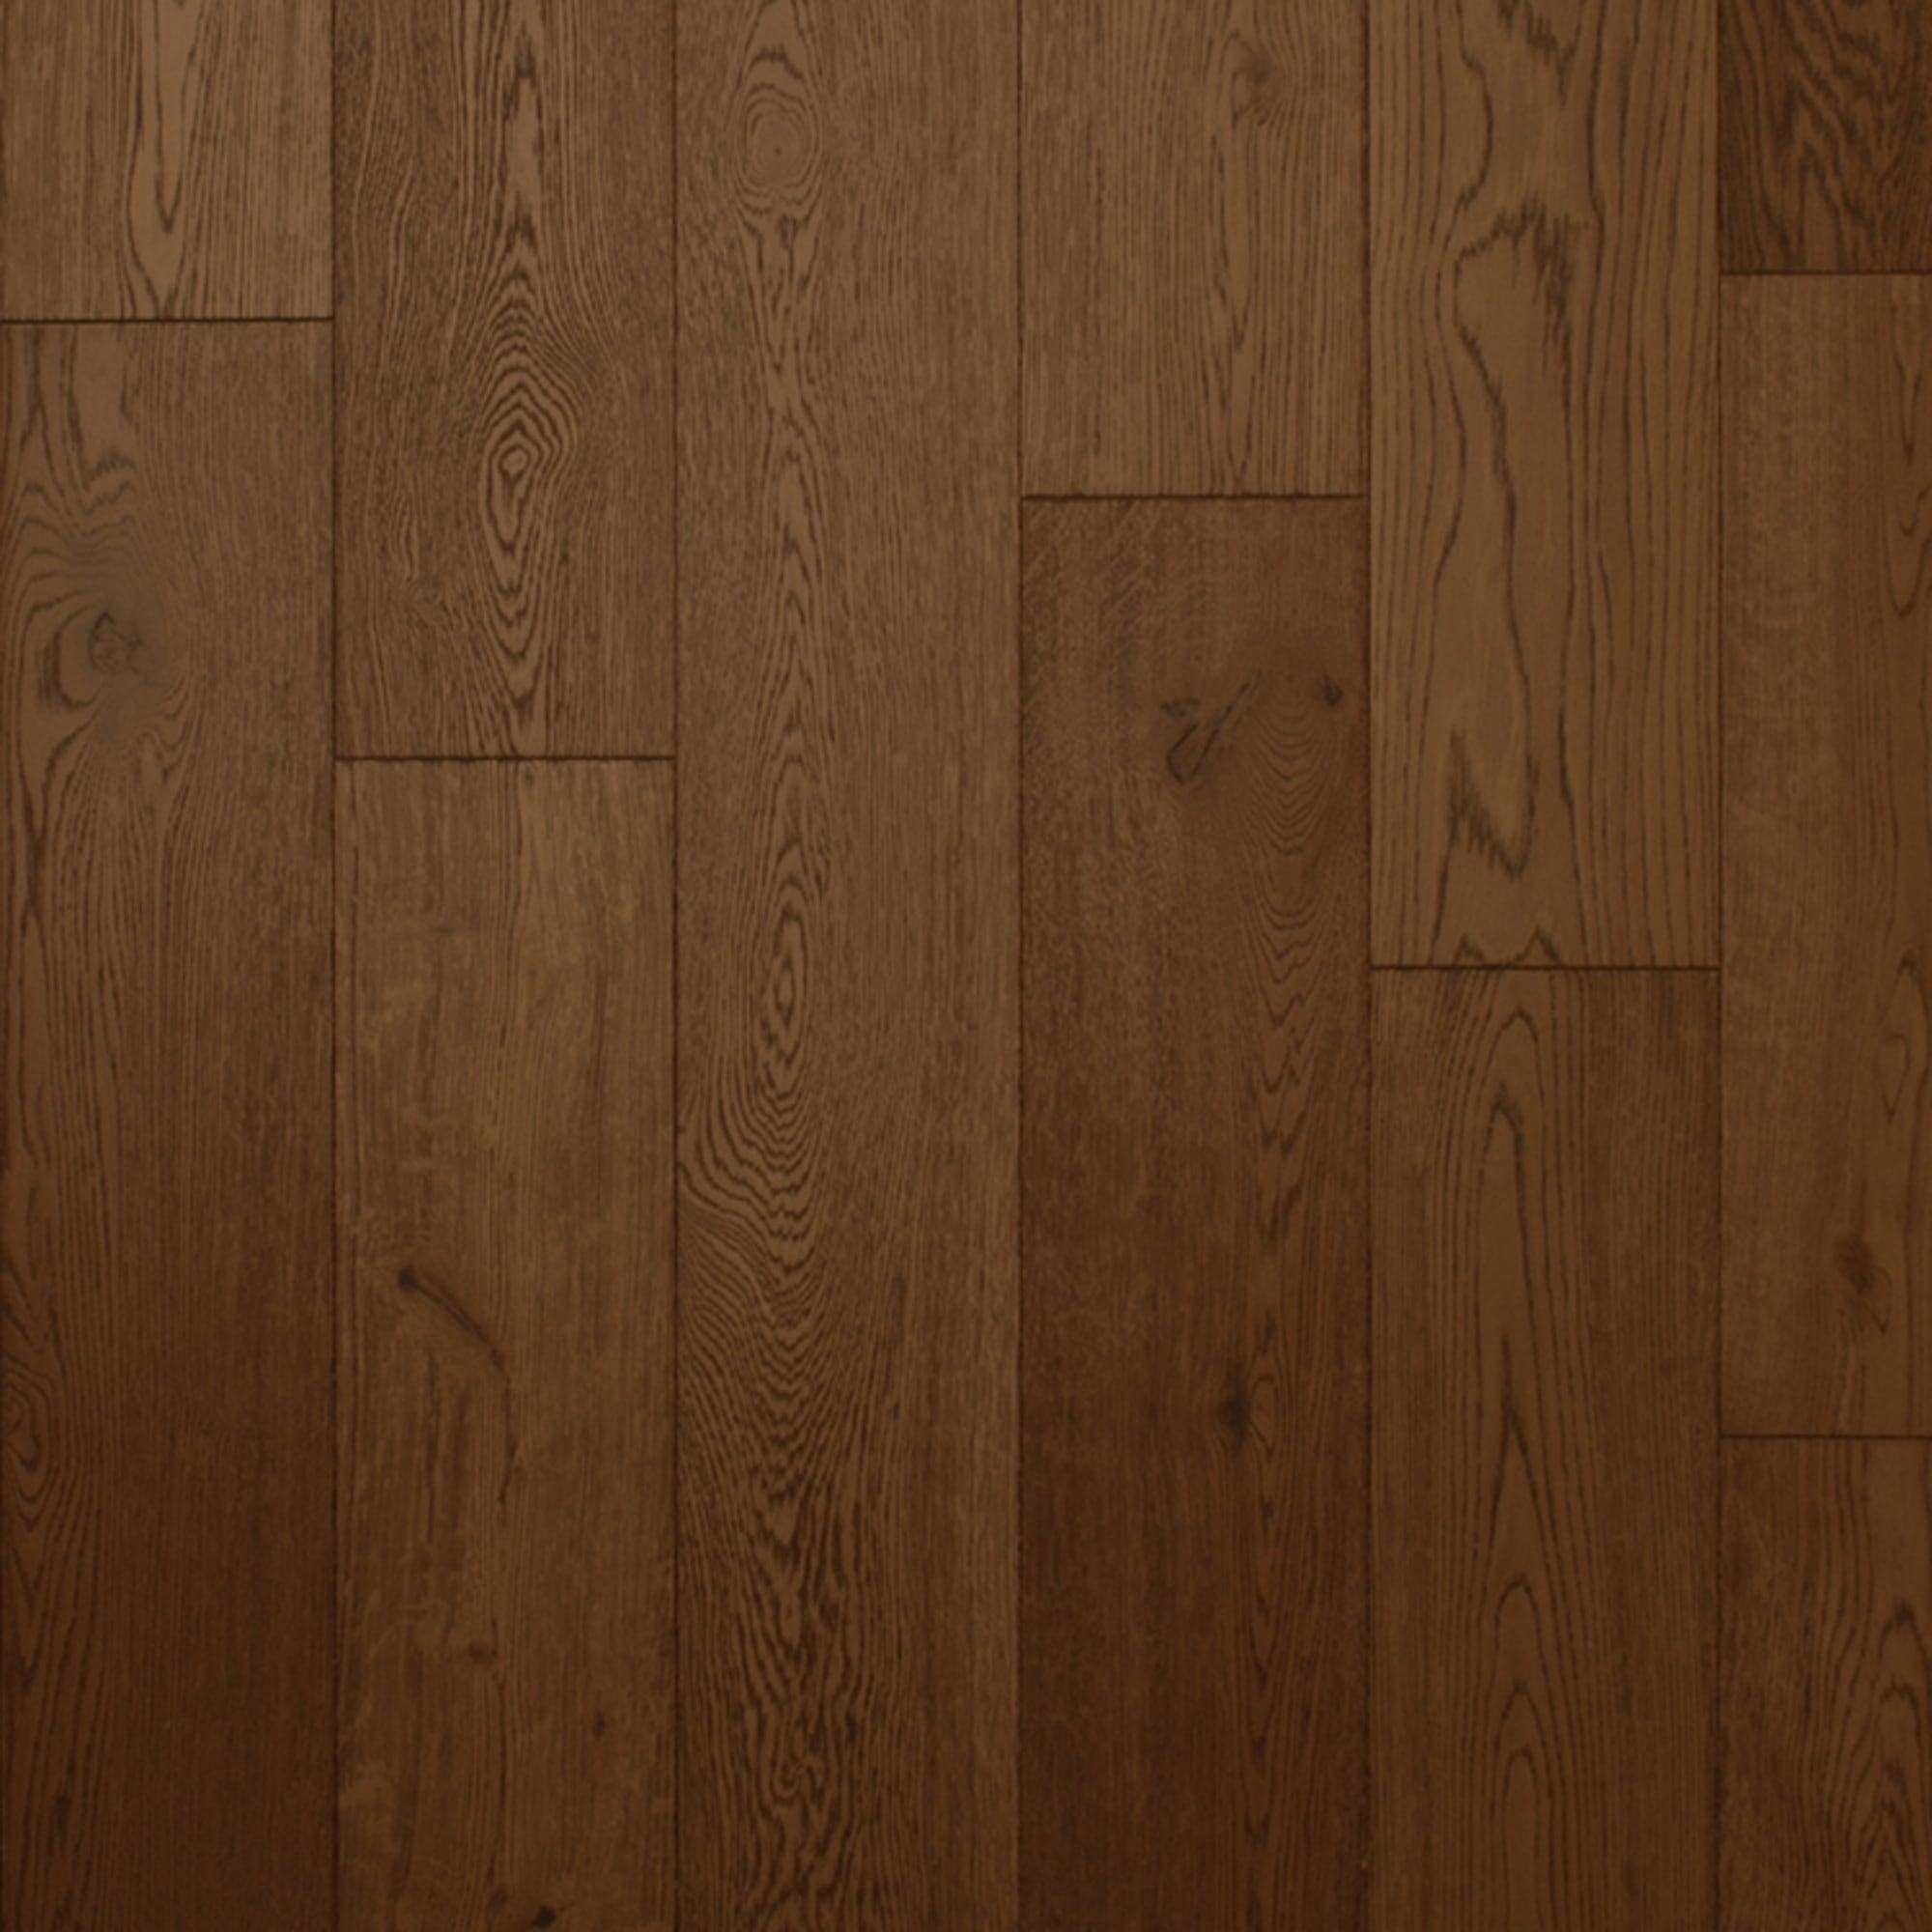 Wood flooring 18x150mm cocoa brushed oiled engineered for Engineered oak flooring